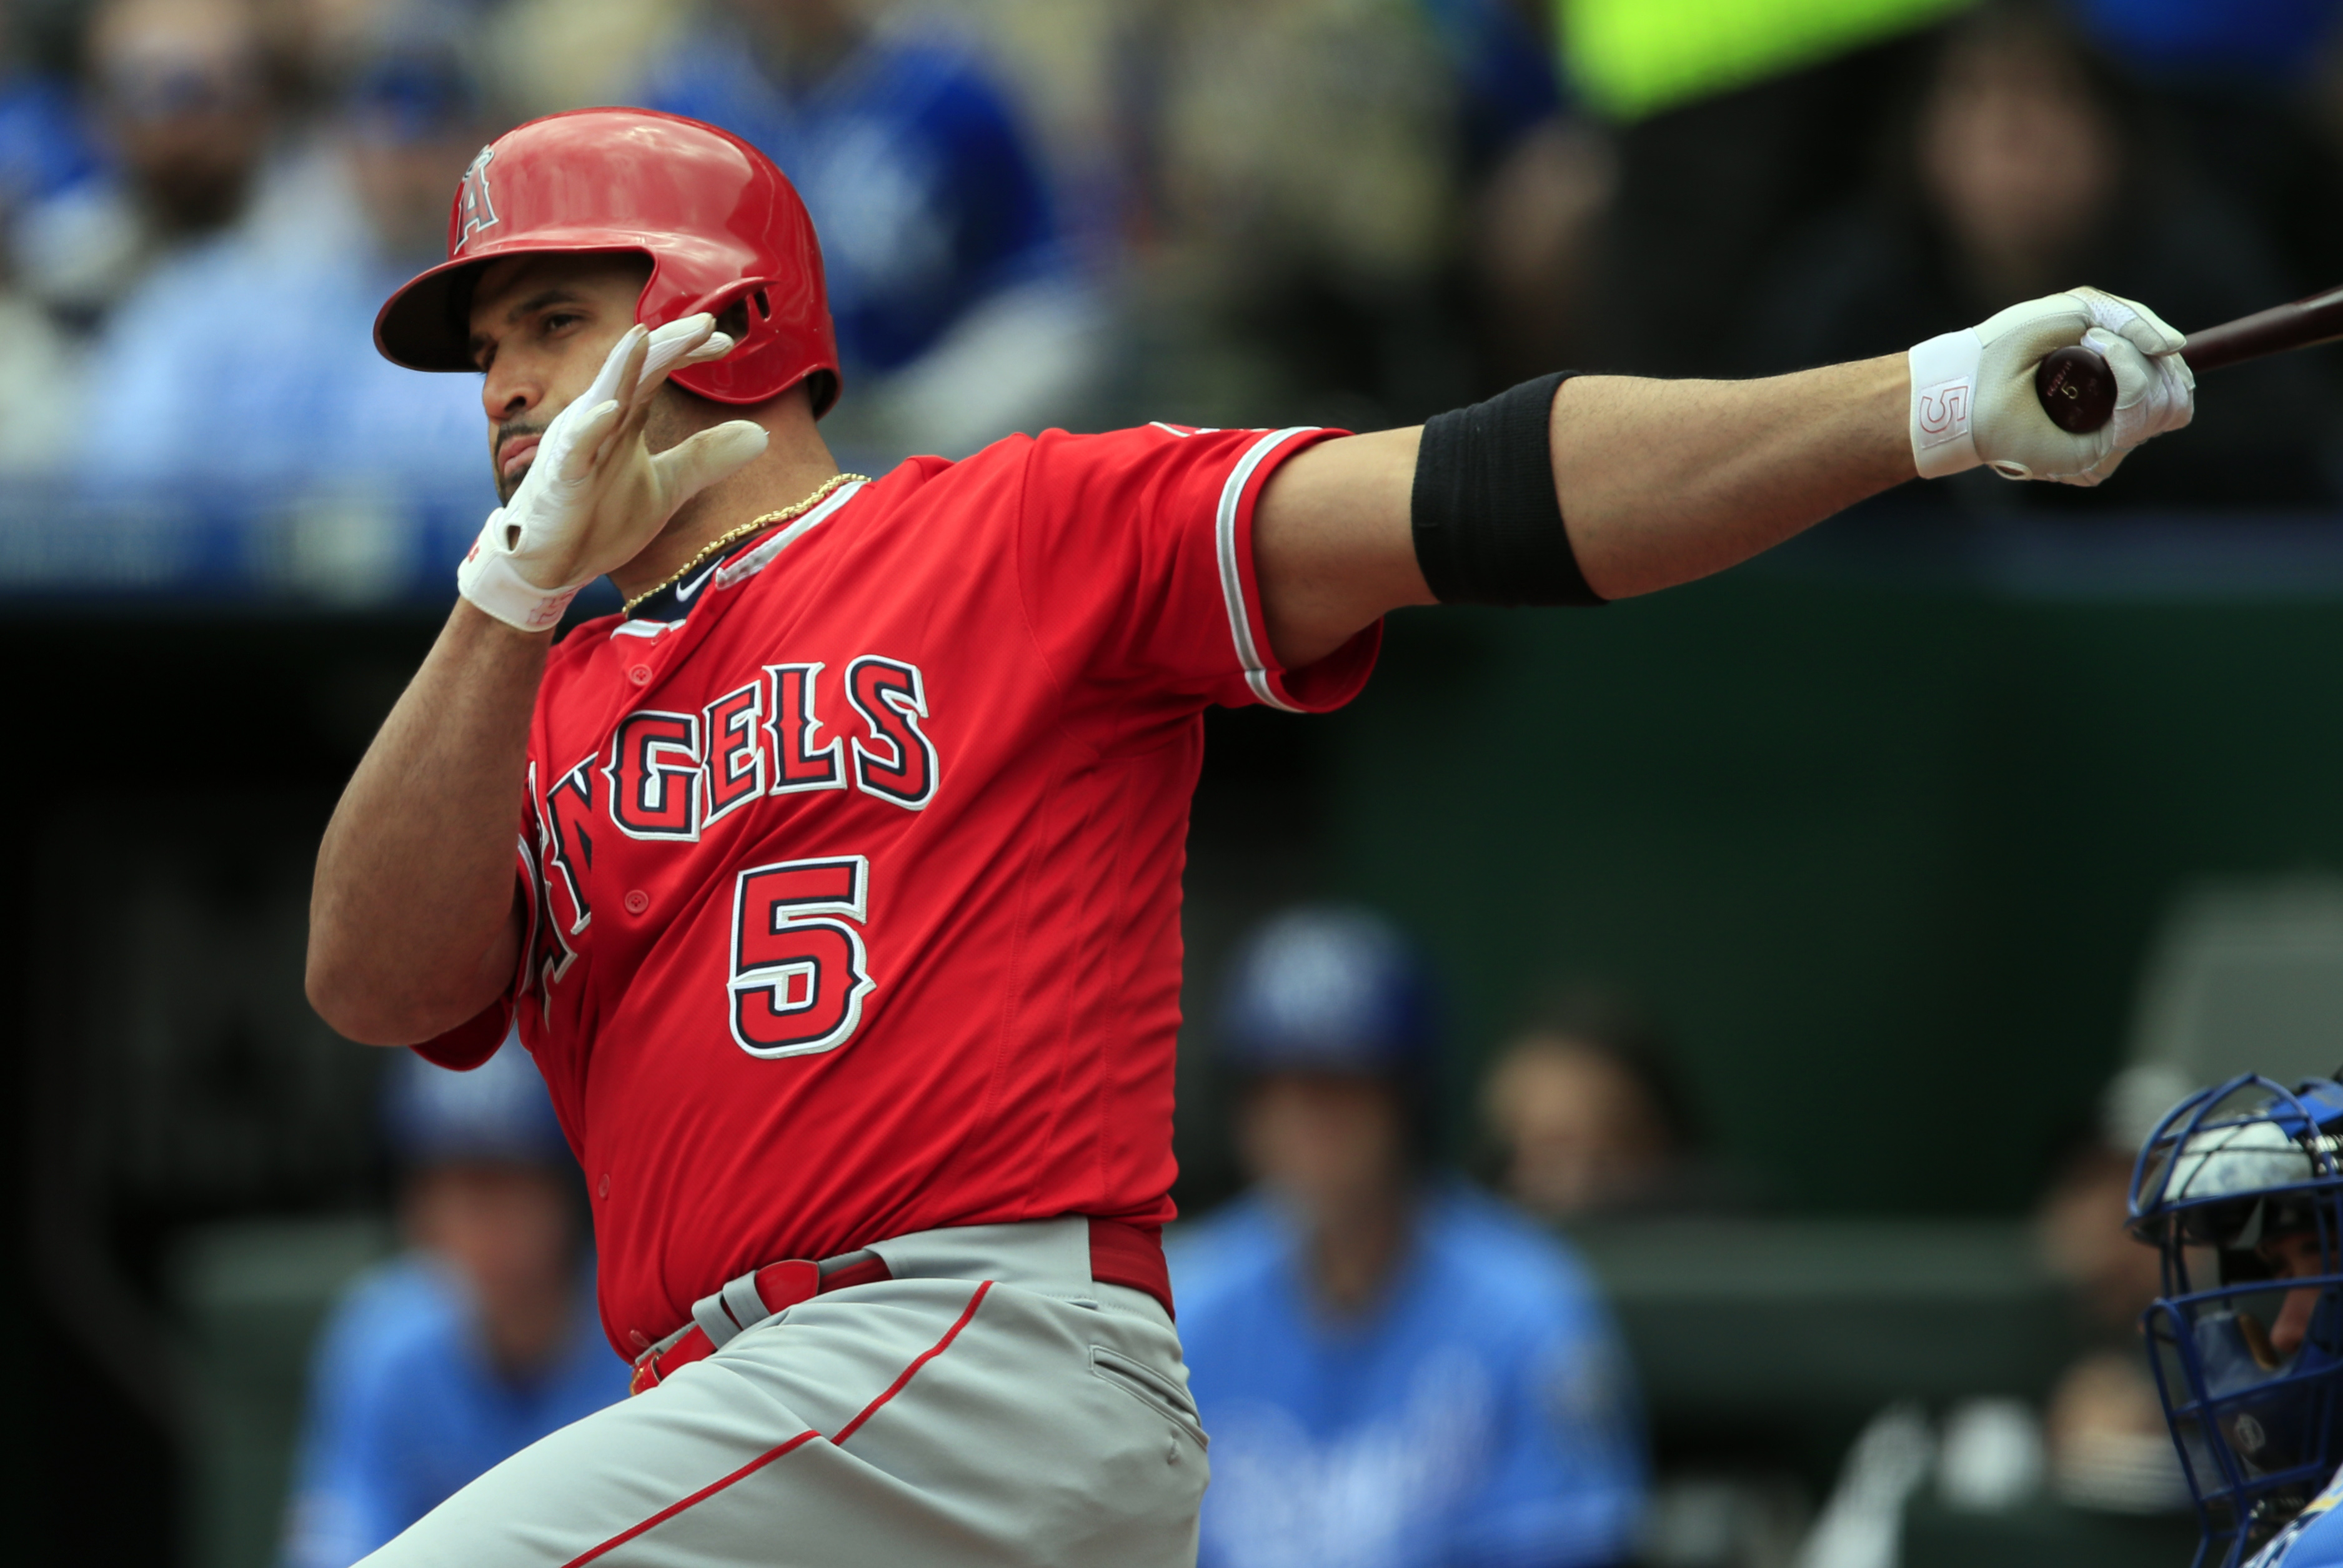 Pujols passes Bonds for 3rd in RBIs as Angels top Royals 7-3